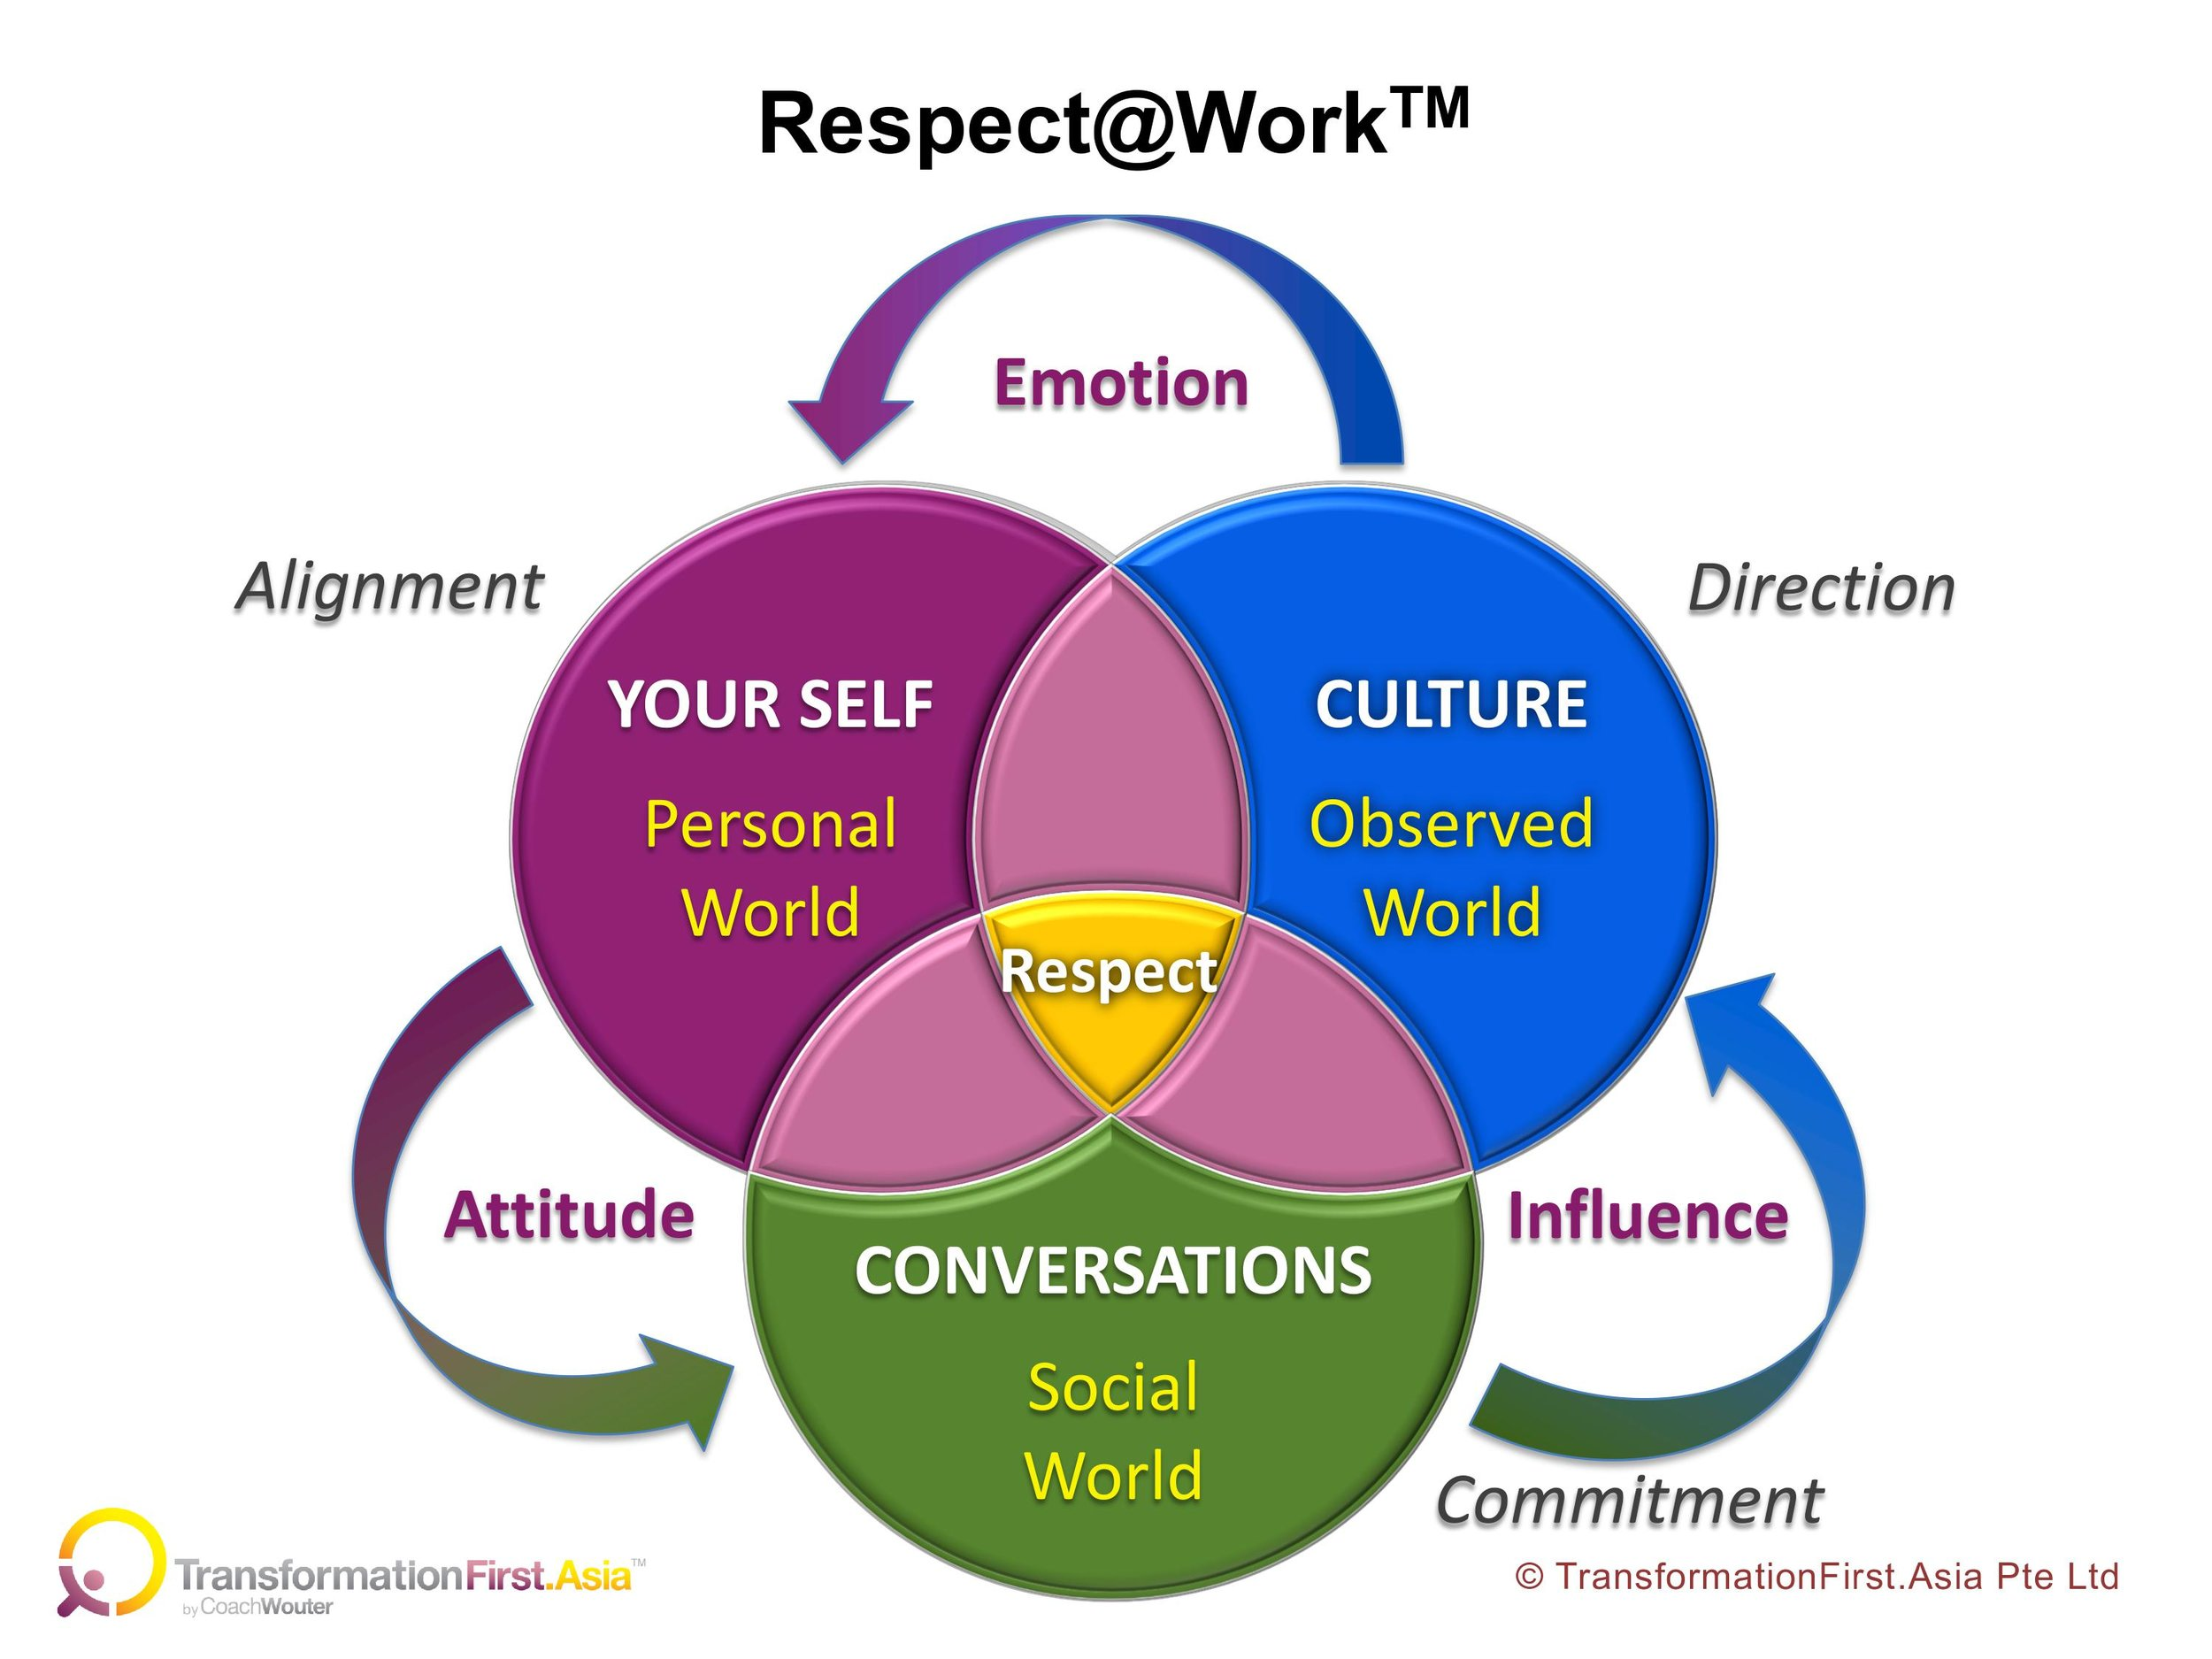 Respect@Work: a framework for practicing and influencing a cross-generational culture of respect at your workplace.